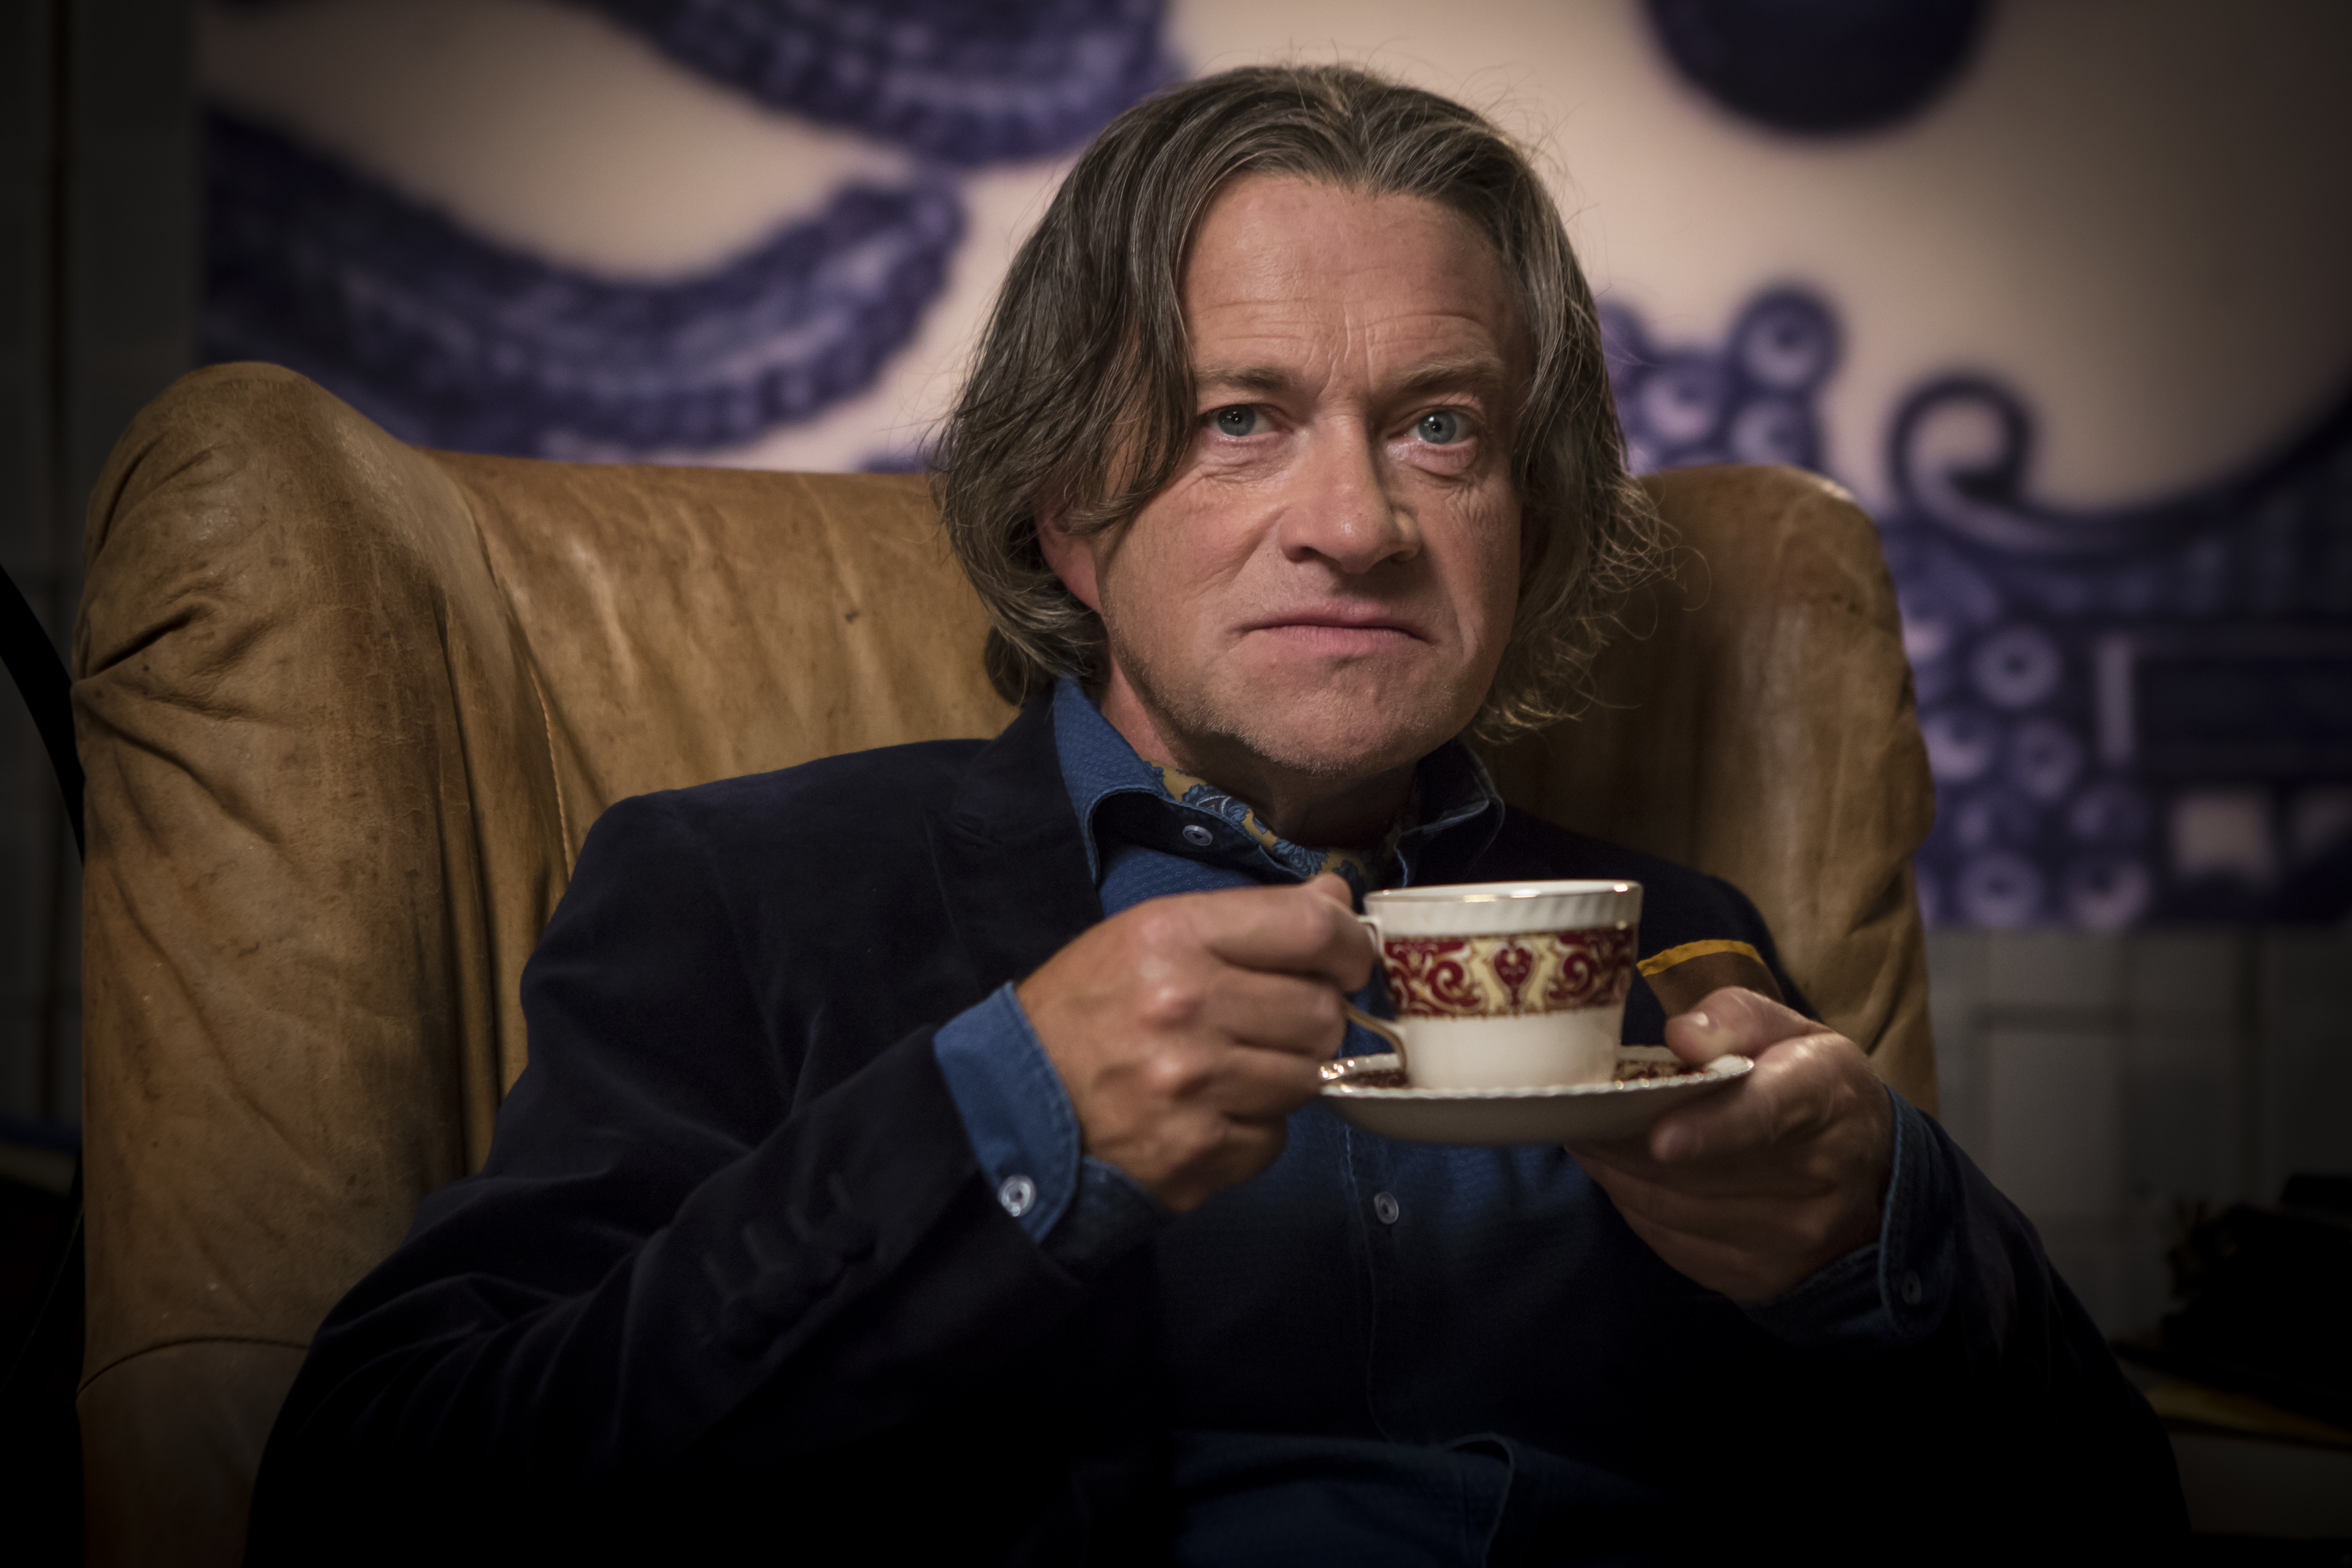 Crackanory – Episode 3 (Harry Enfield who reads The Teacup HasLanded)